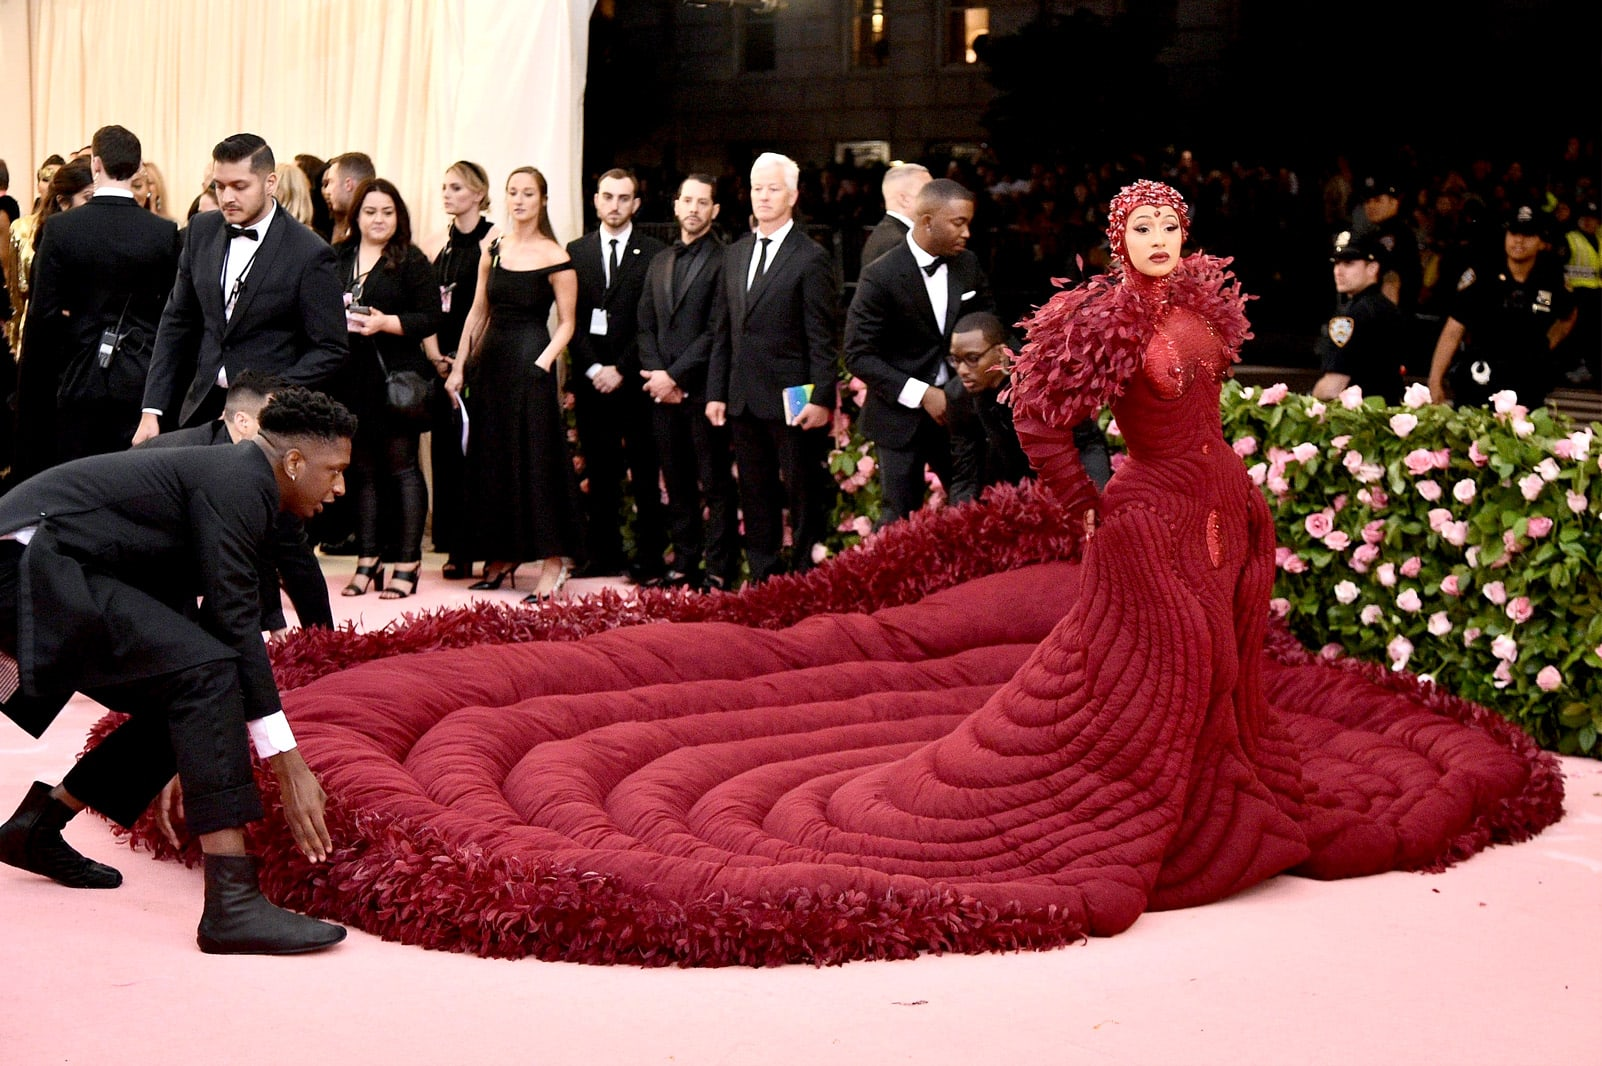 What's Trending Now Everything You Need To Know About The MET Gala 7 trending now What's Trending Now: Everything You Need To Know About The MET Gala! Whats Trending Now Everything You Need To Know About The MET Gala 7